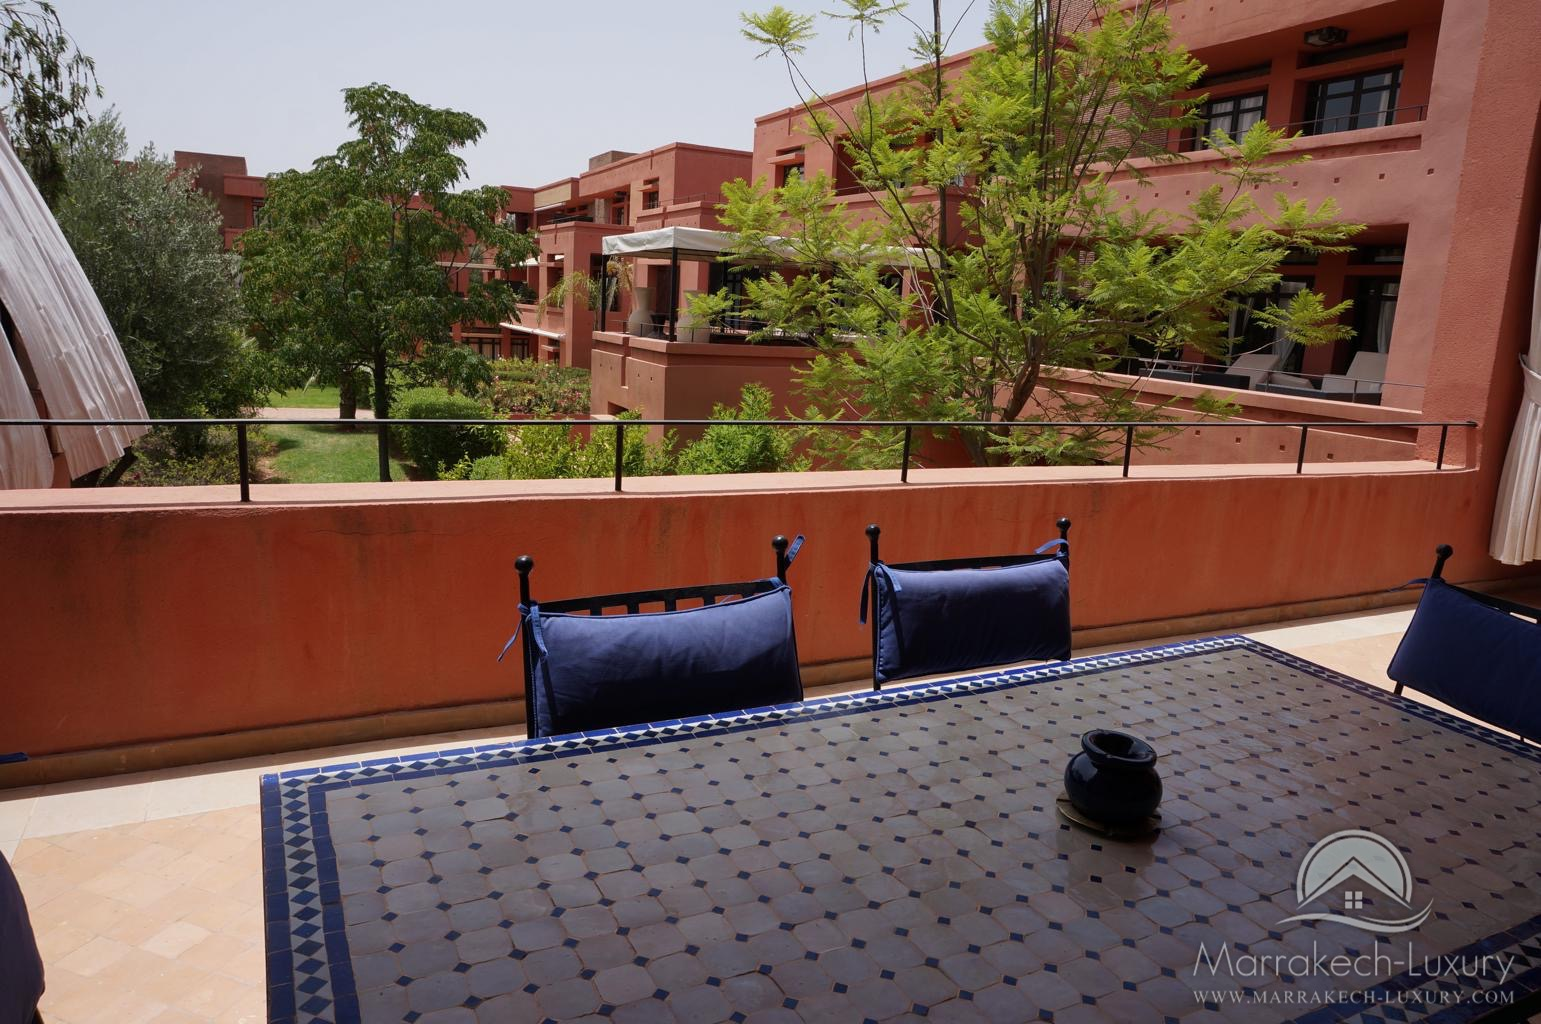 Aptalame1001 62 agence immobili re marrakech acheter for Agence immobiliere 62